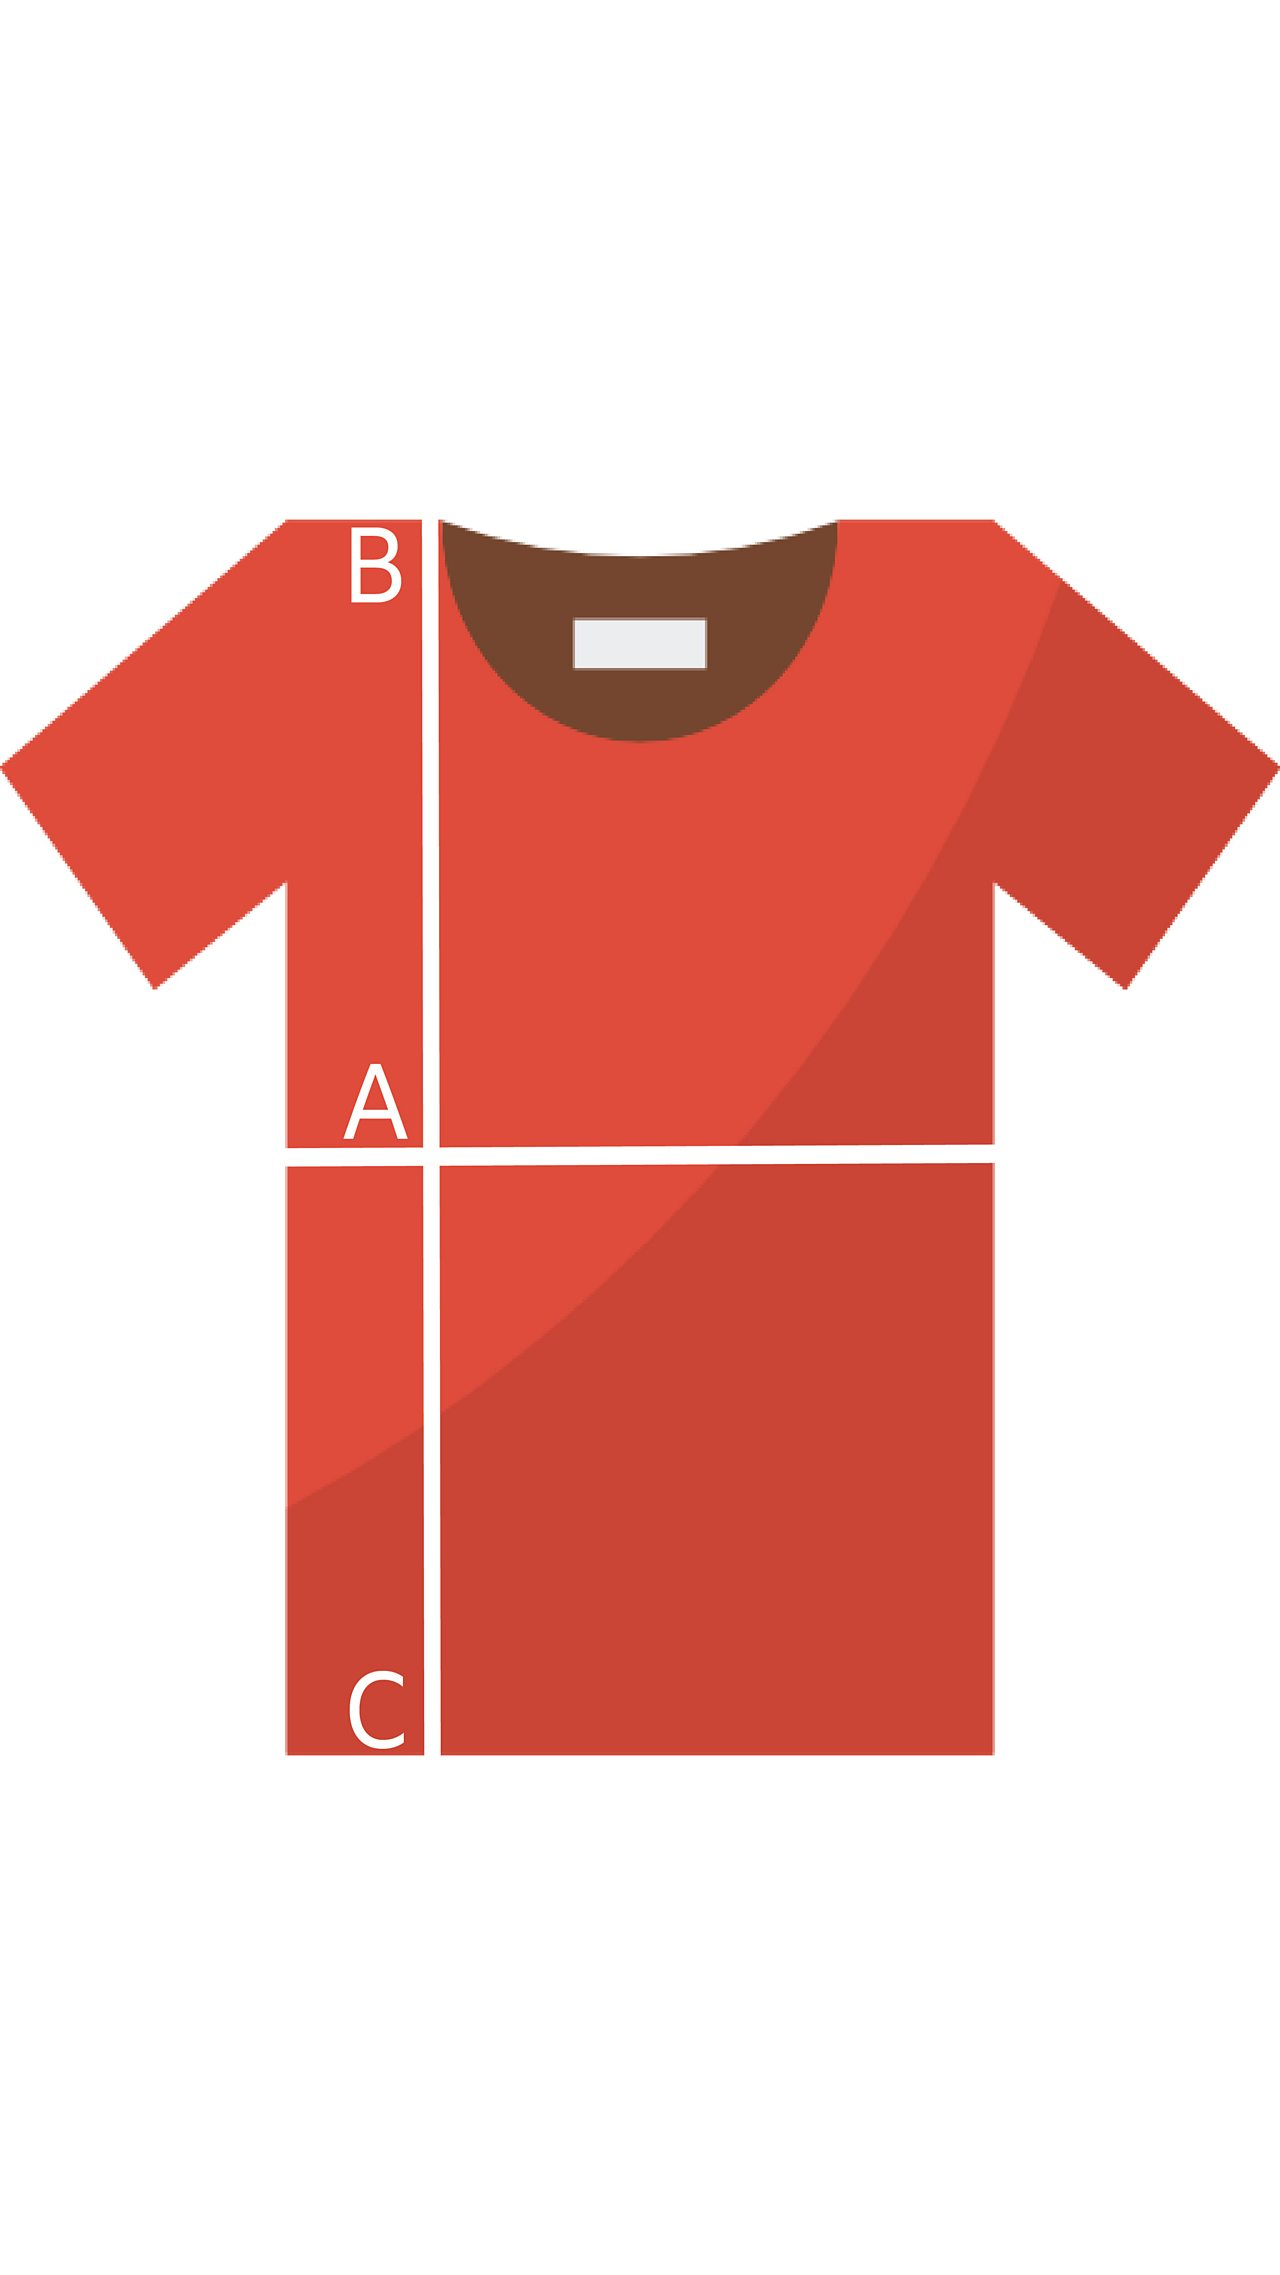 A graphic of a red t-shirt with folding guiding lines